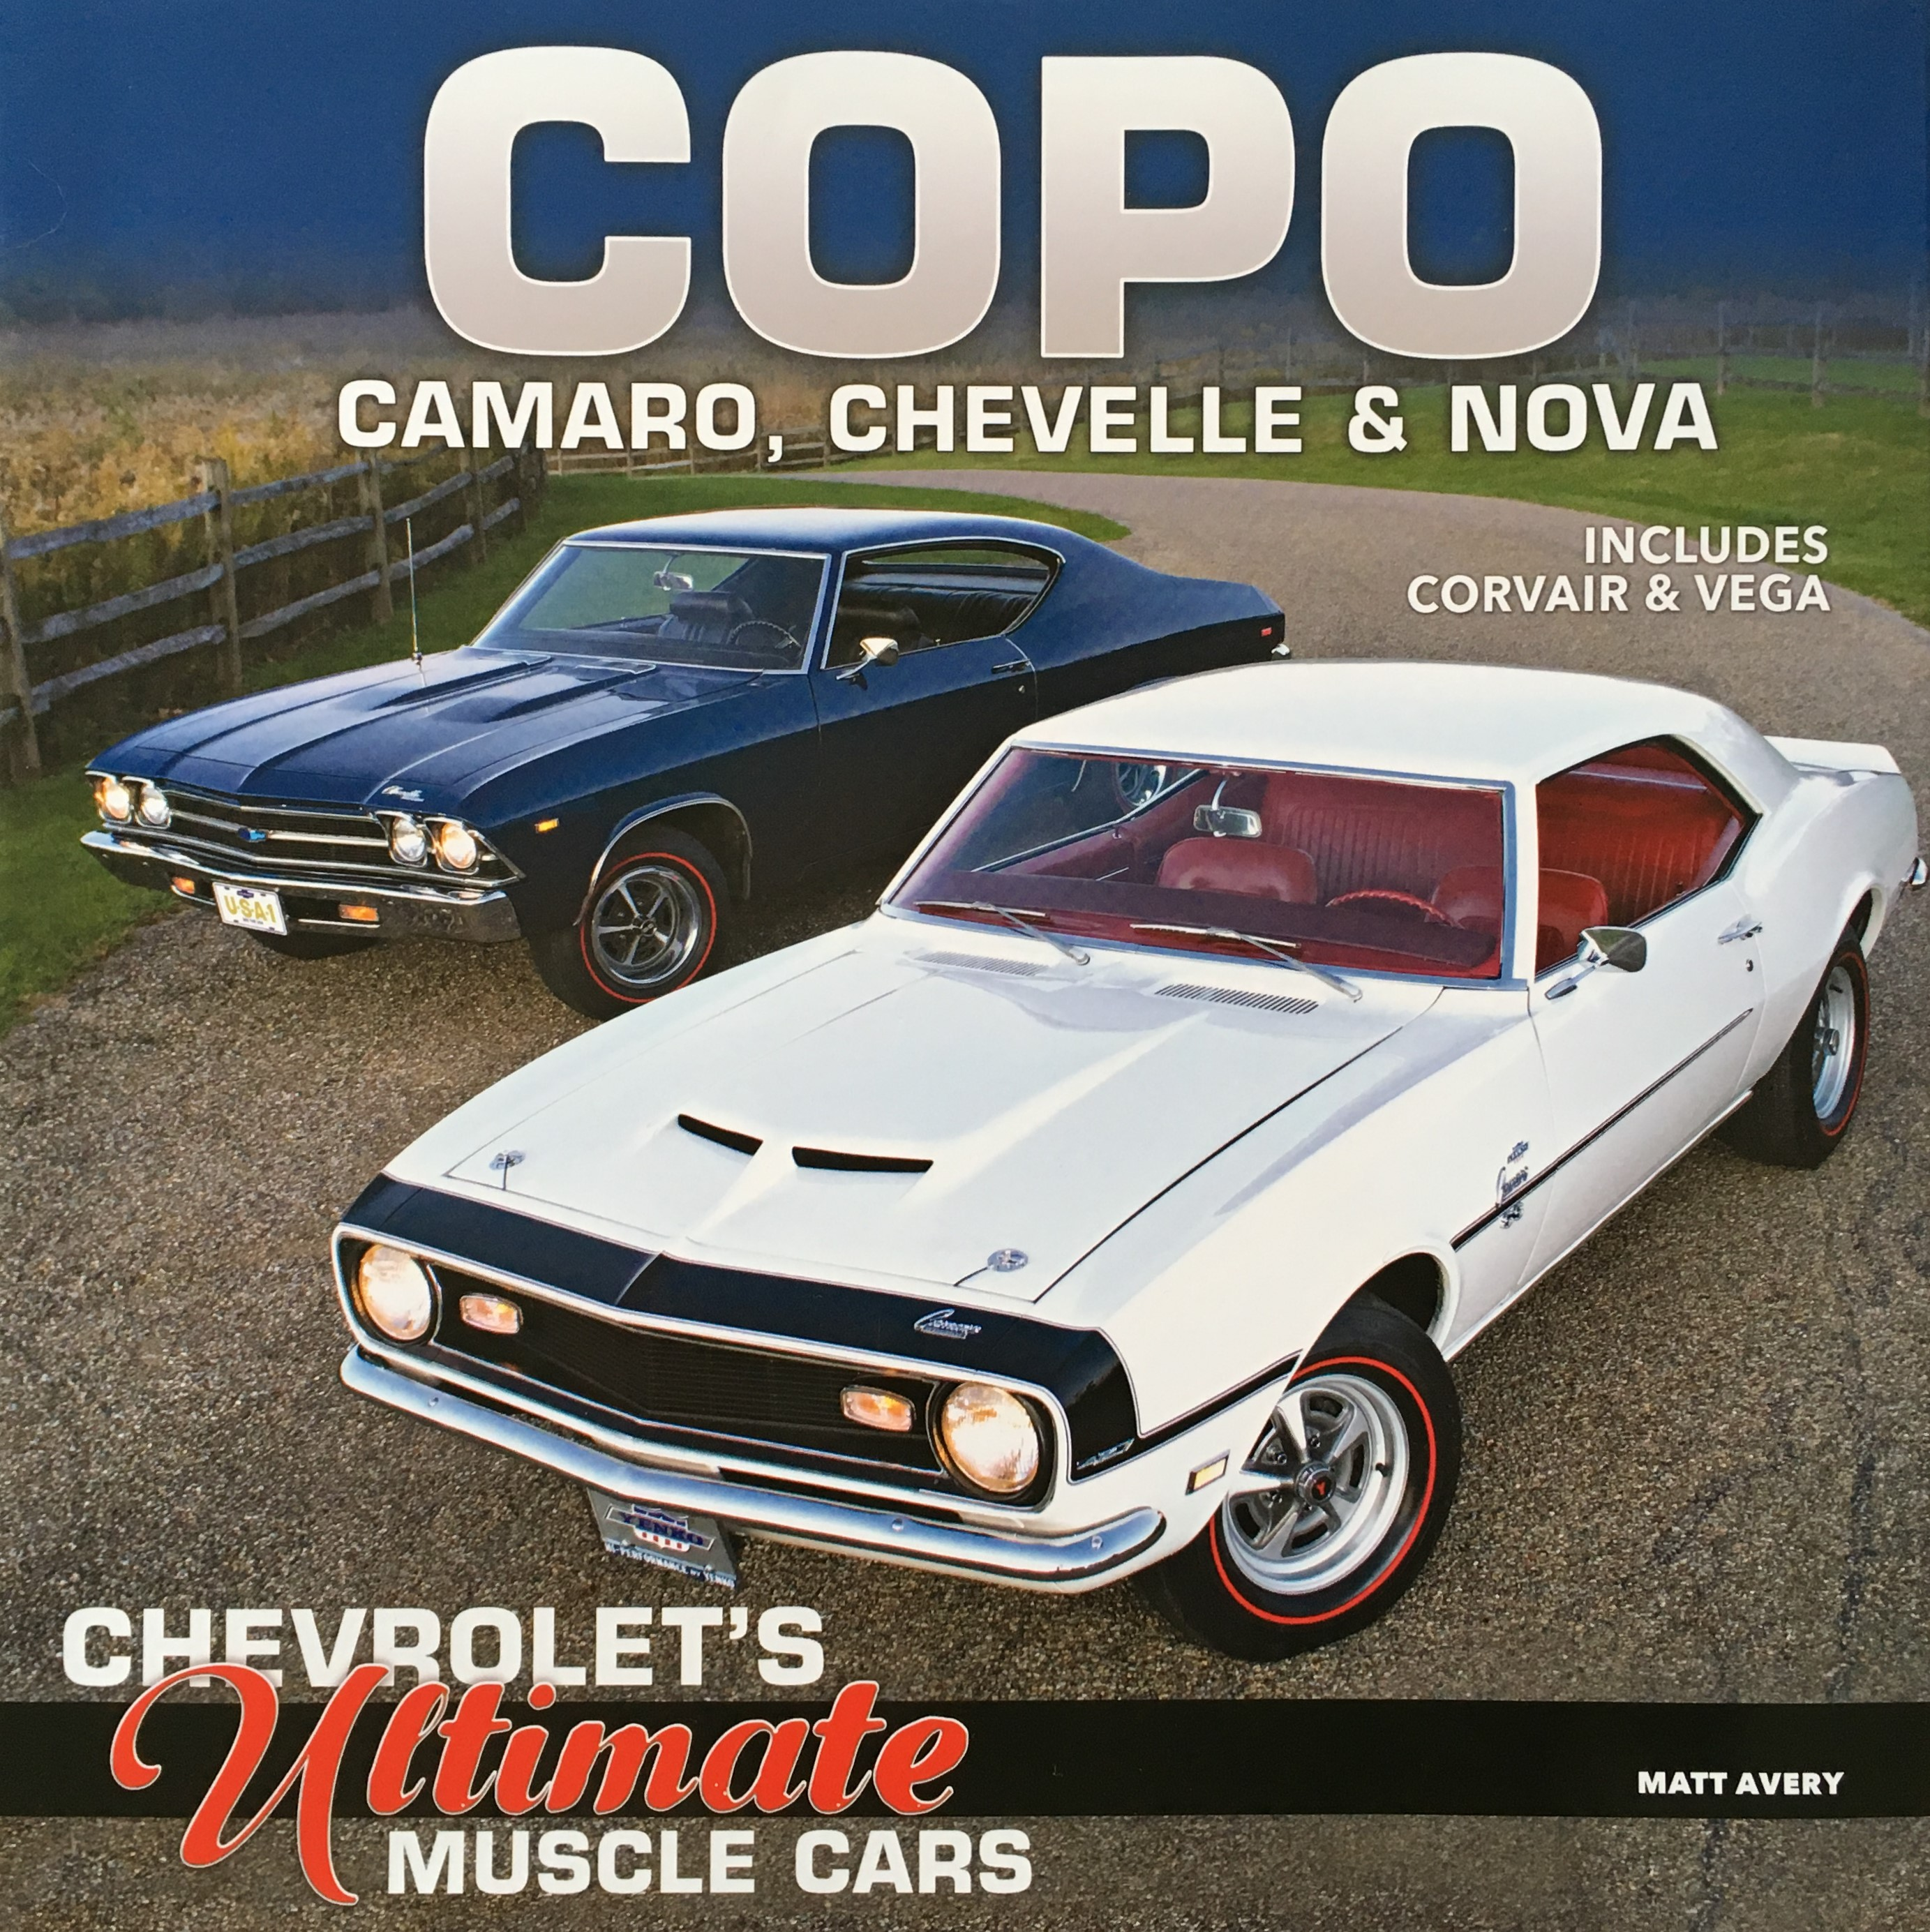 Matt Avery's book <i>COPO Camaro, Chevelle and Nova: Chevrolet's Ultimate Muscle Cars</i> is a delightful read for any automotive person, especially Chevy lovers. | Matt Avery photo